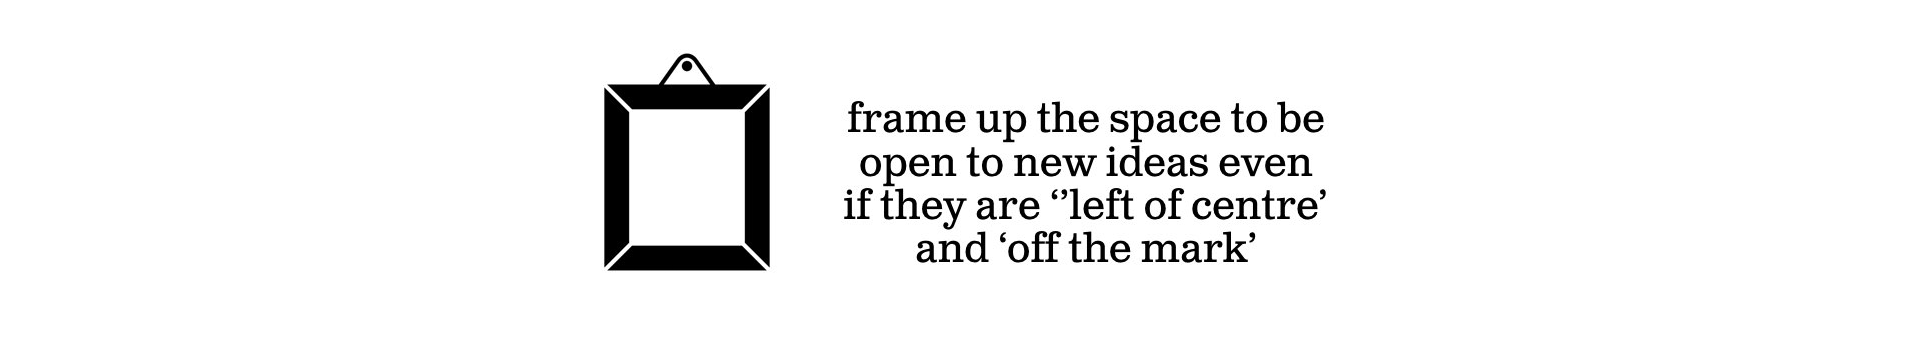 Frame up the space - Ideas With Legs.png